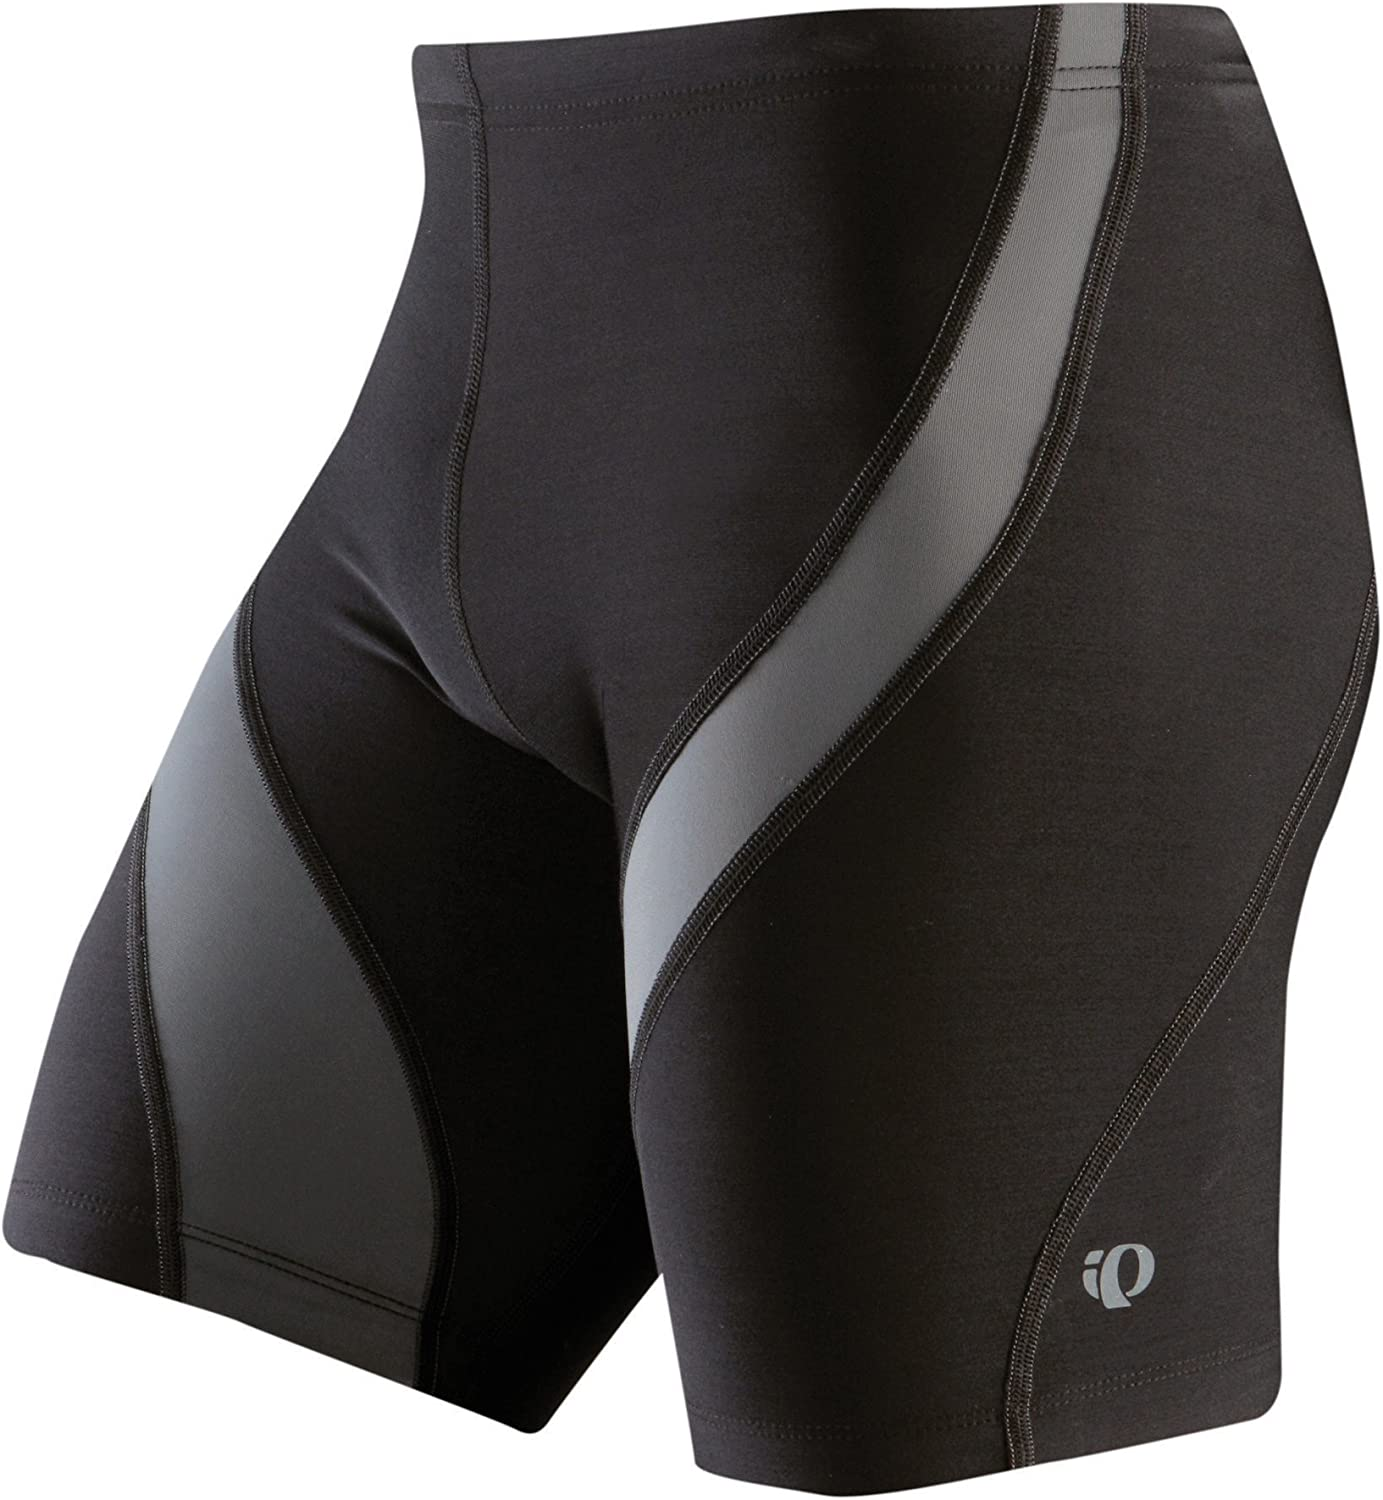 Indianapolis Mall Pearl iZUMi Infinity Running Compression Max 53% OFF Short